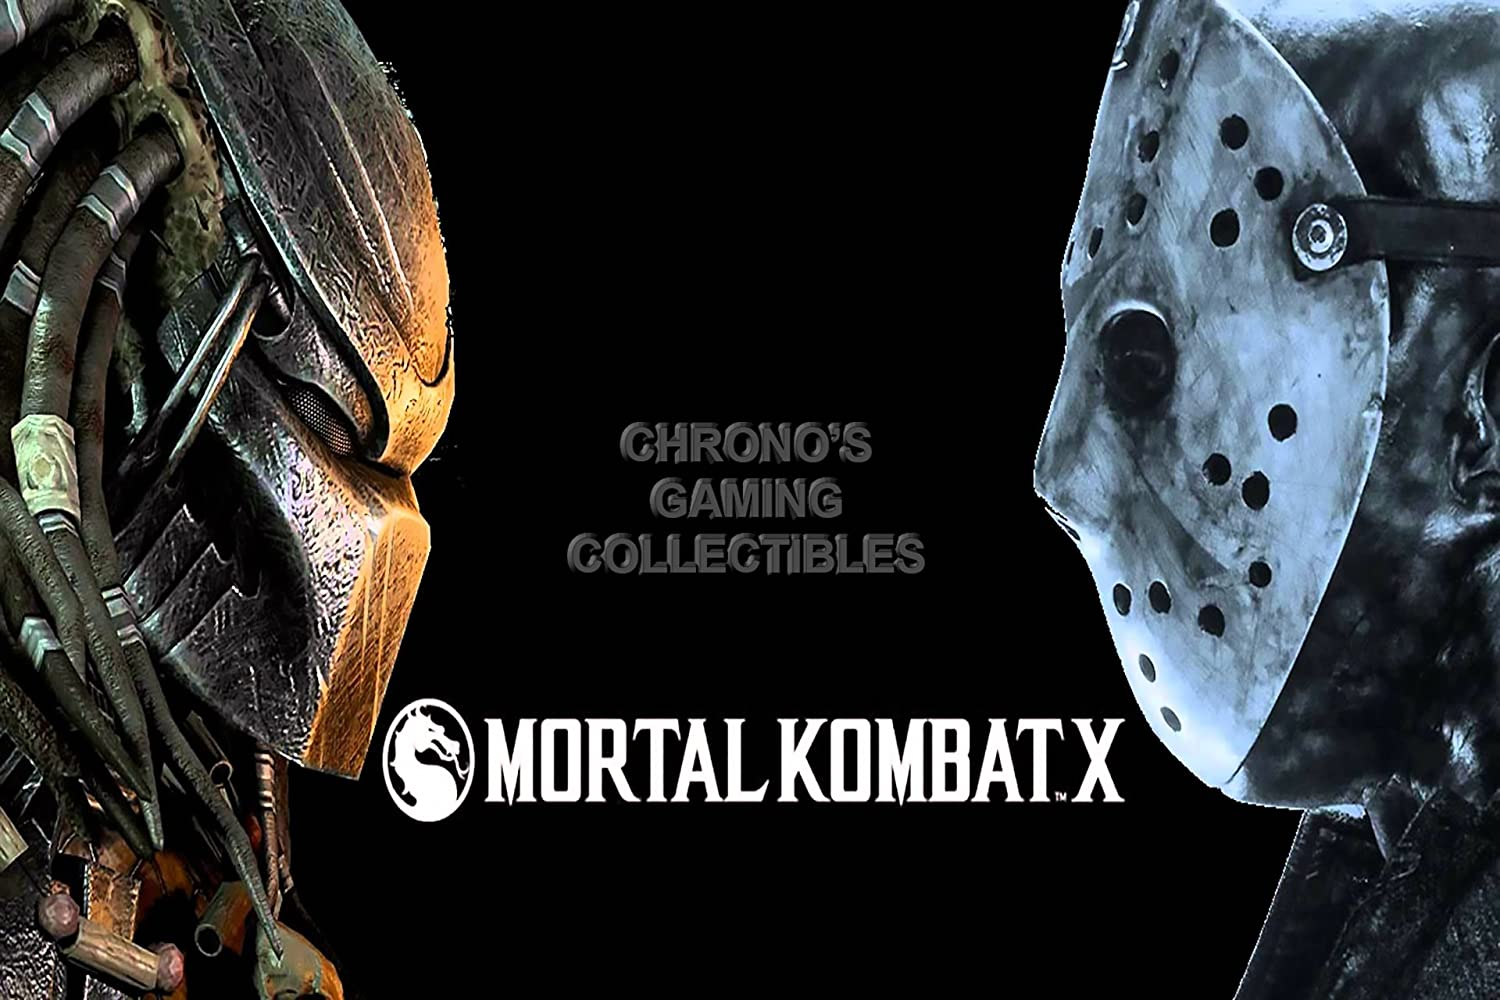 CGC Huge Poster - Mortal Kombat X Predator VS Jason PS3 PS4 XBOX 360 ONE - MKX022 (24